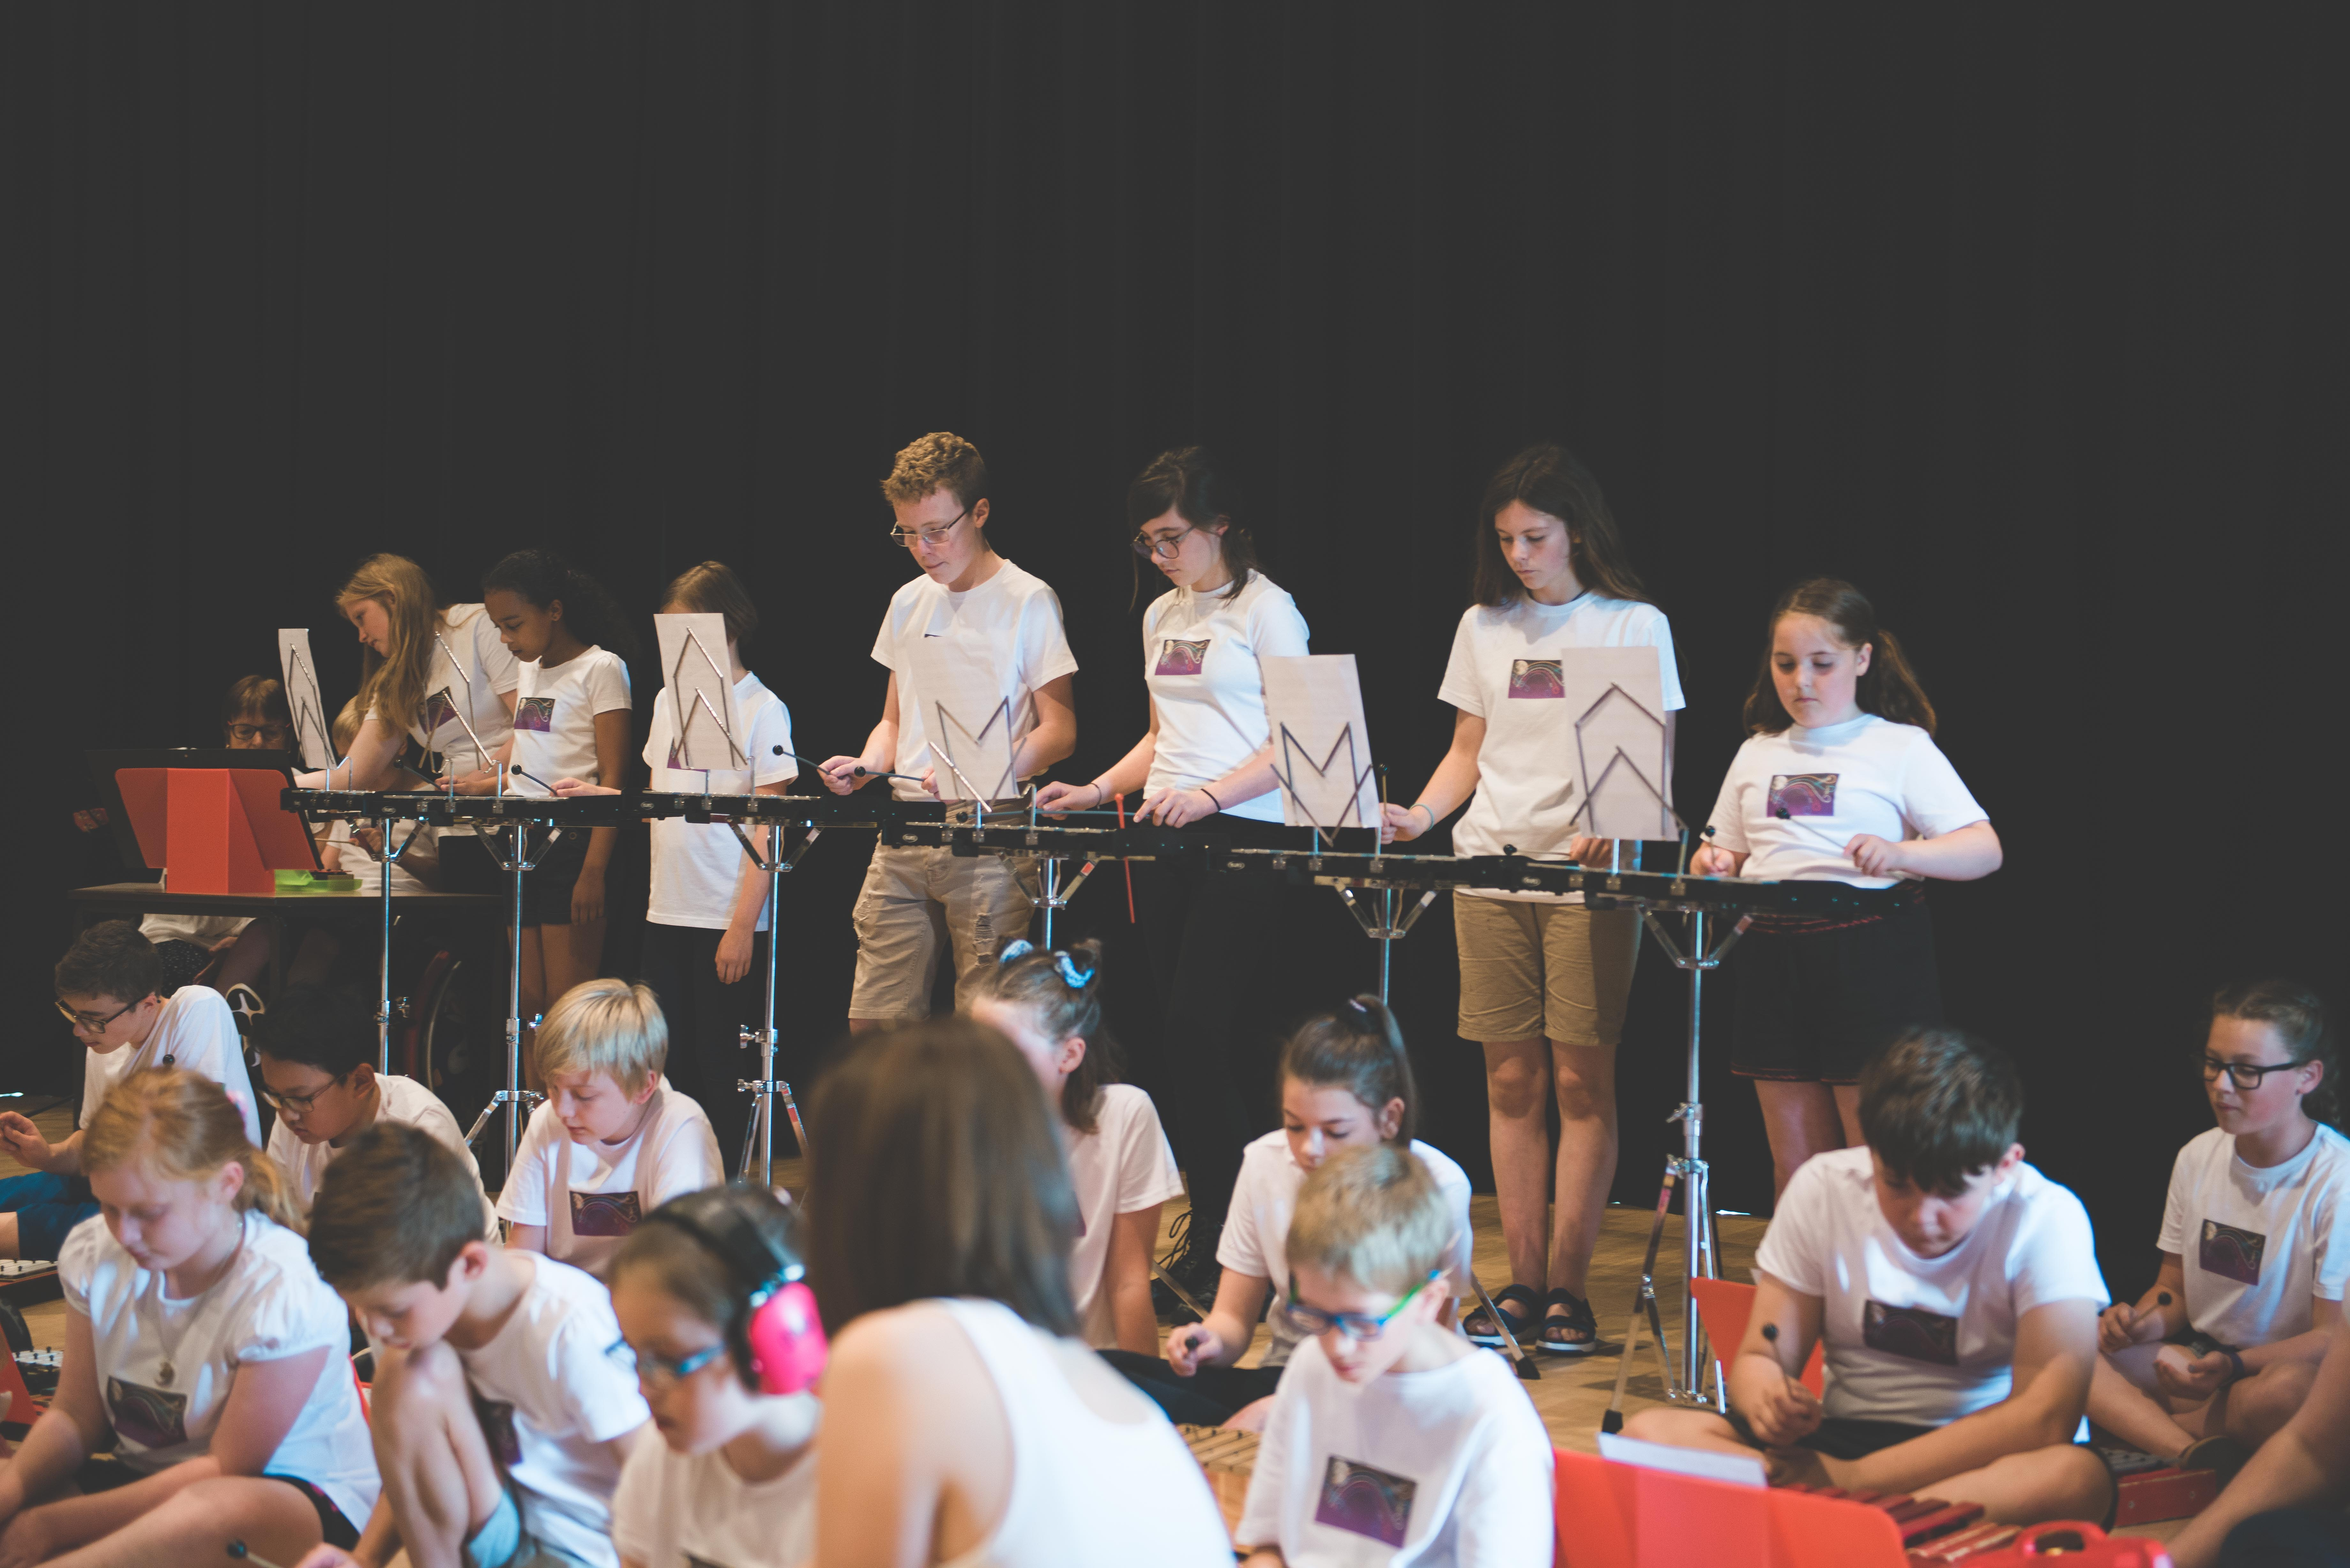 group of sumer school students performing a piece on xylophones